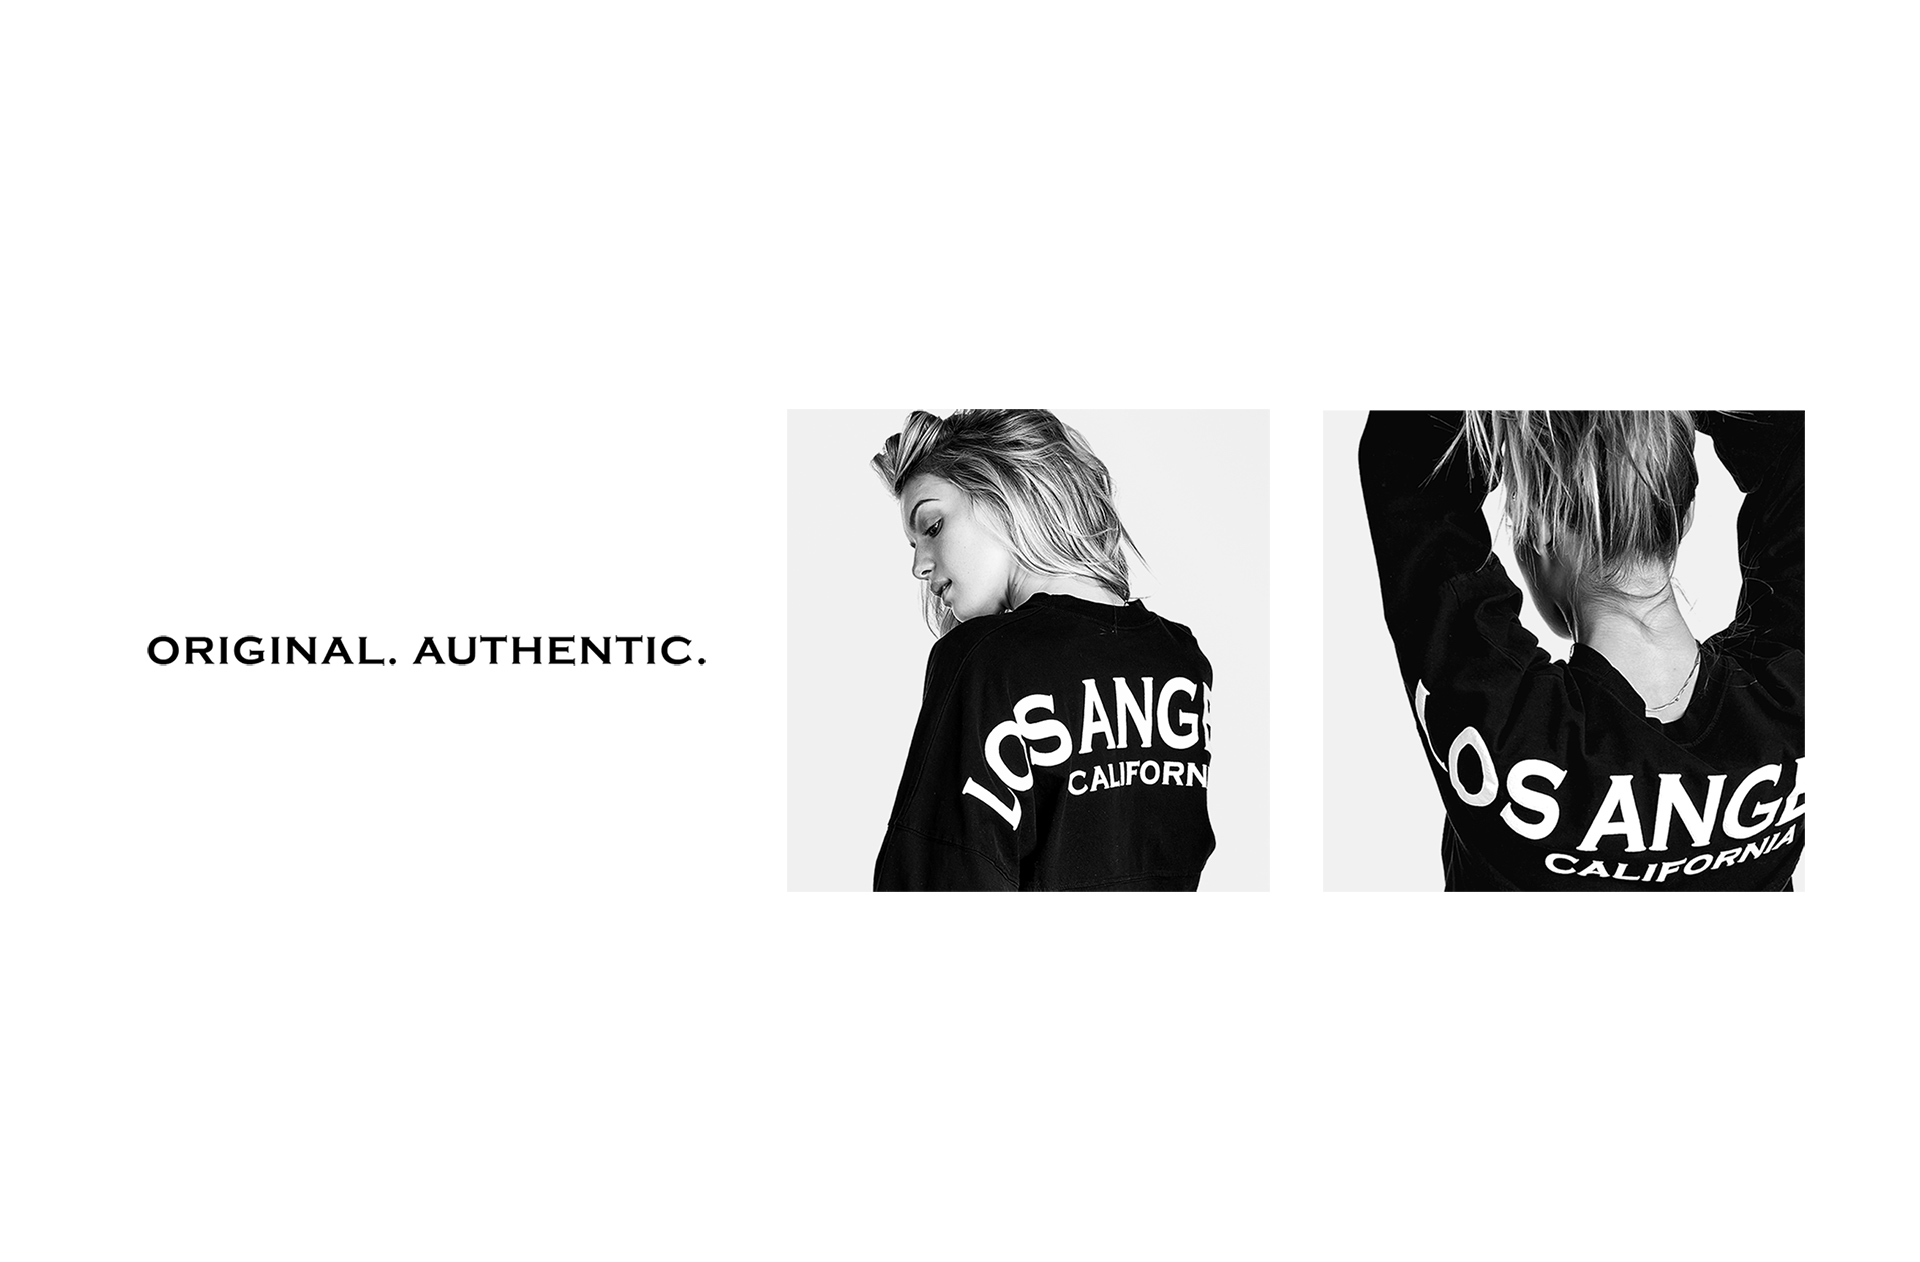 The Original. Authentic. Los Angeles Spirit Jersey® in black.